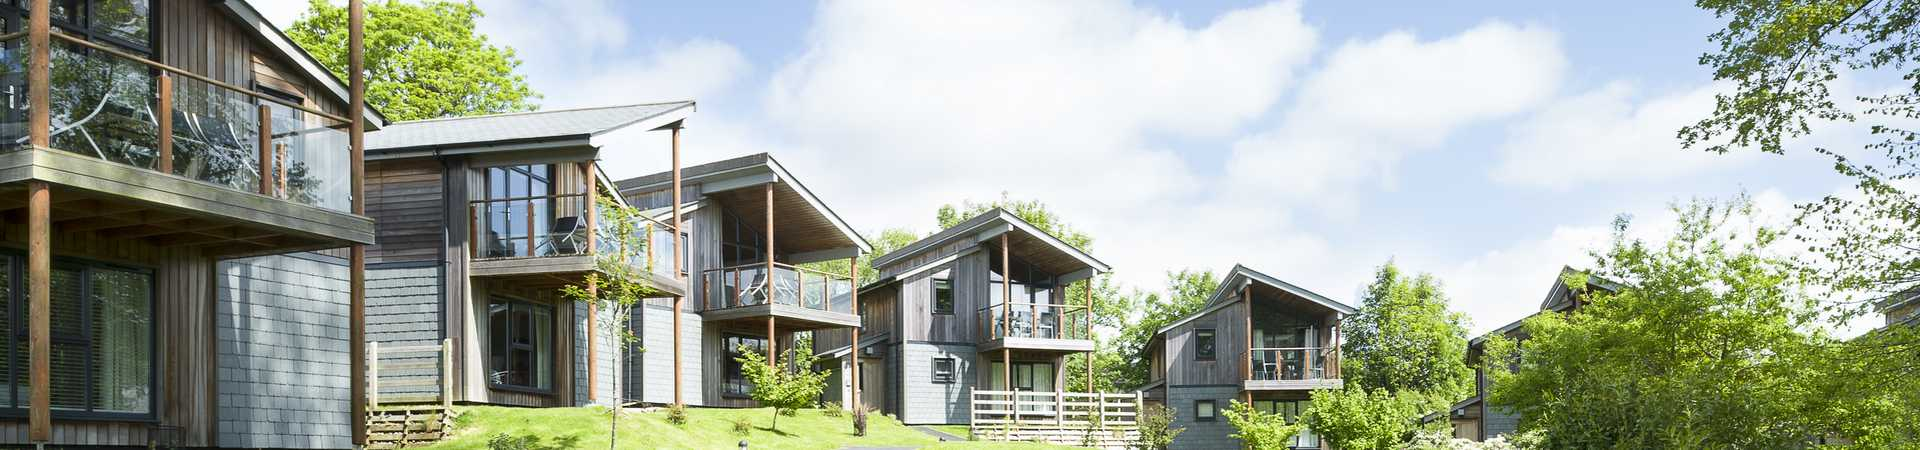 row of luxury woodland lodges in cornwall